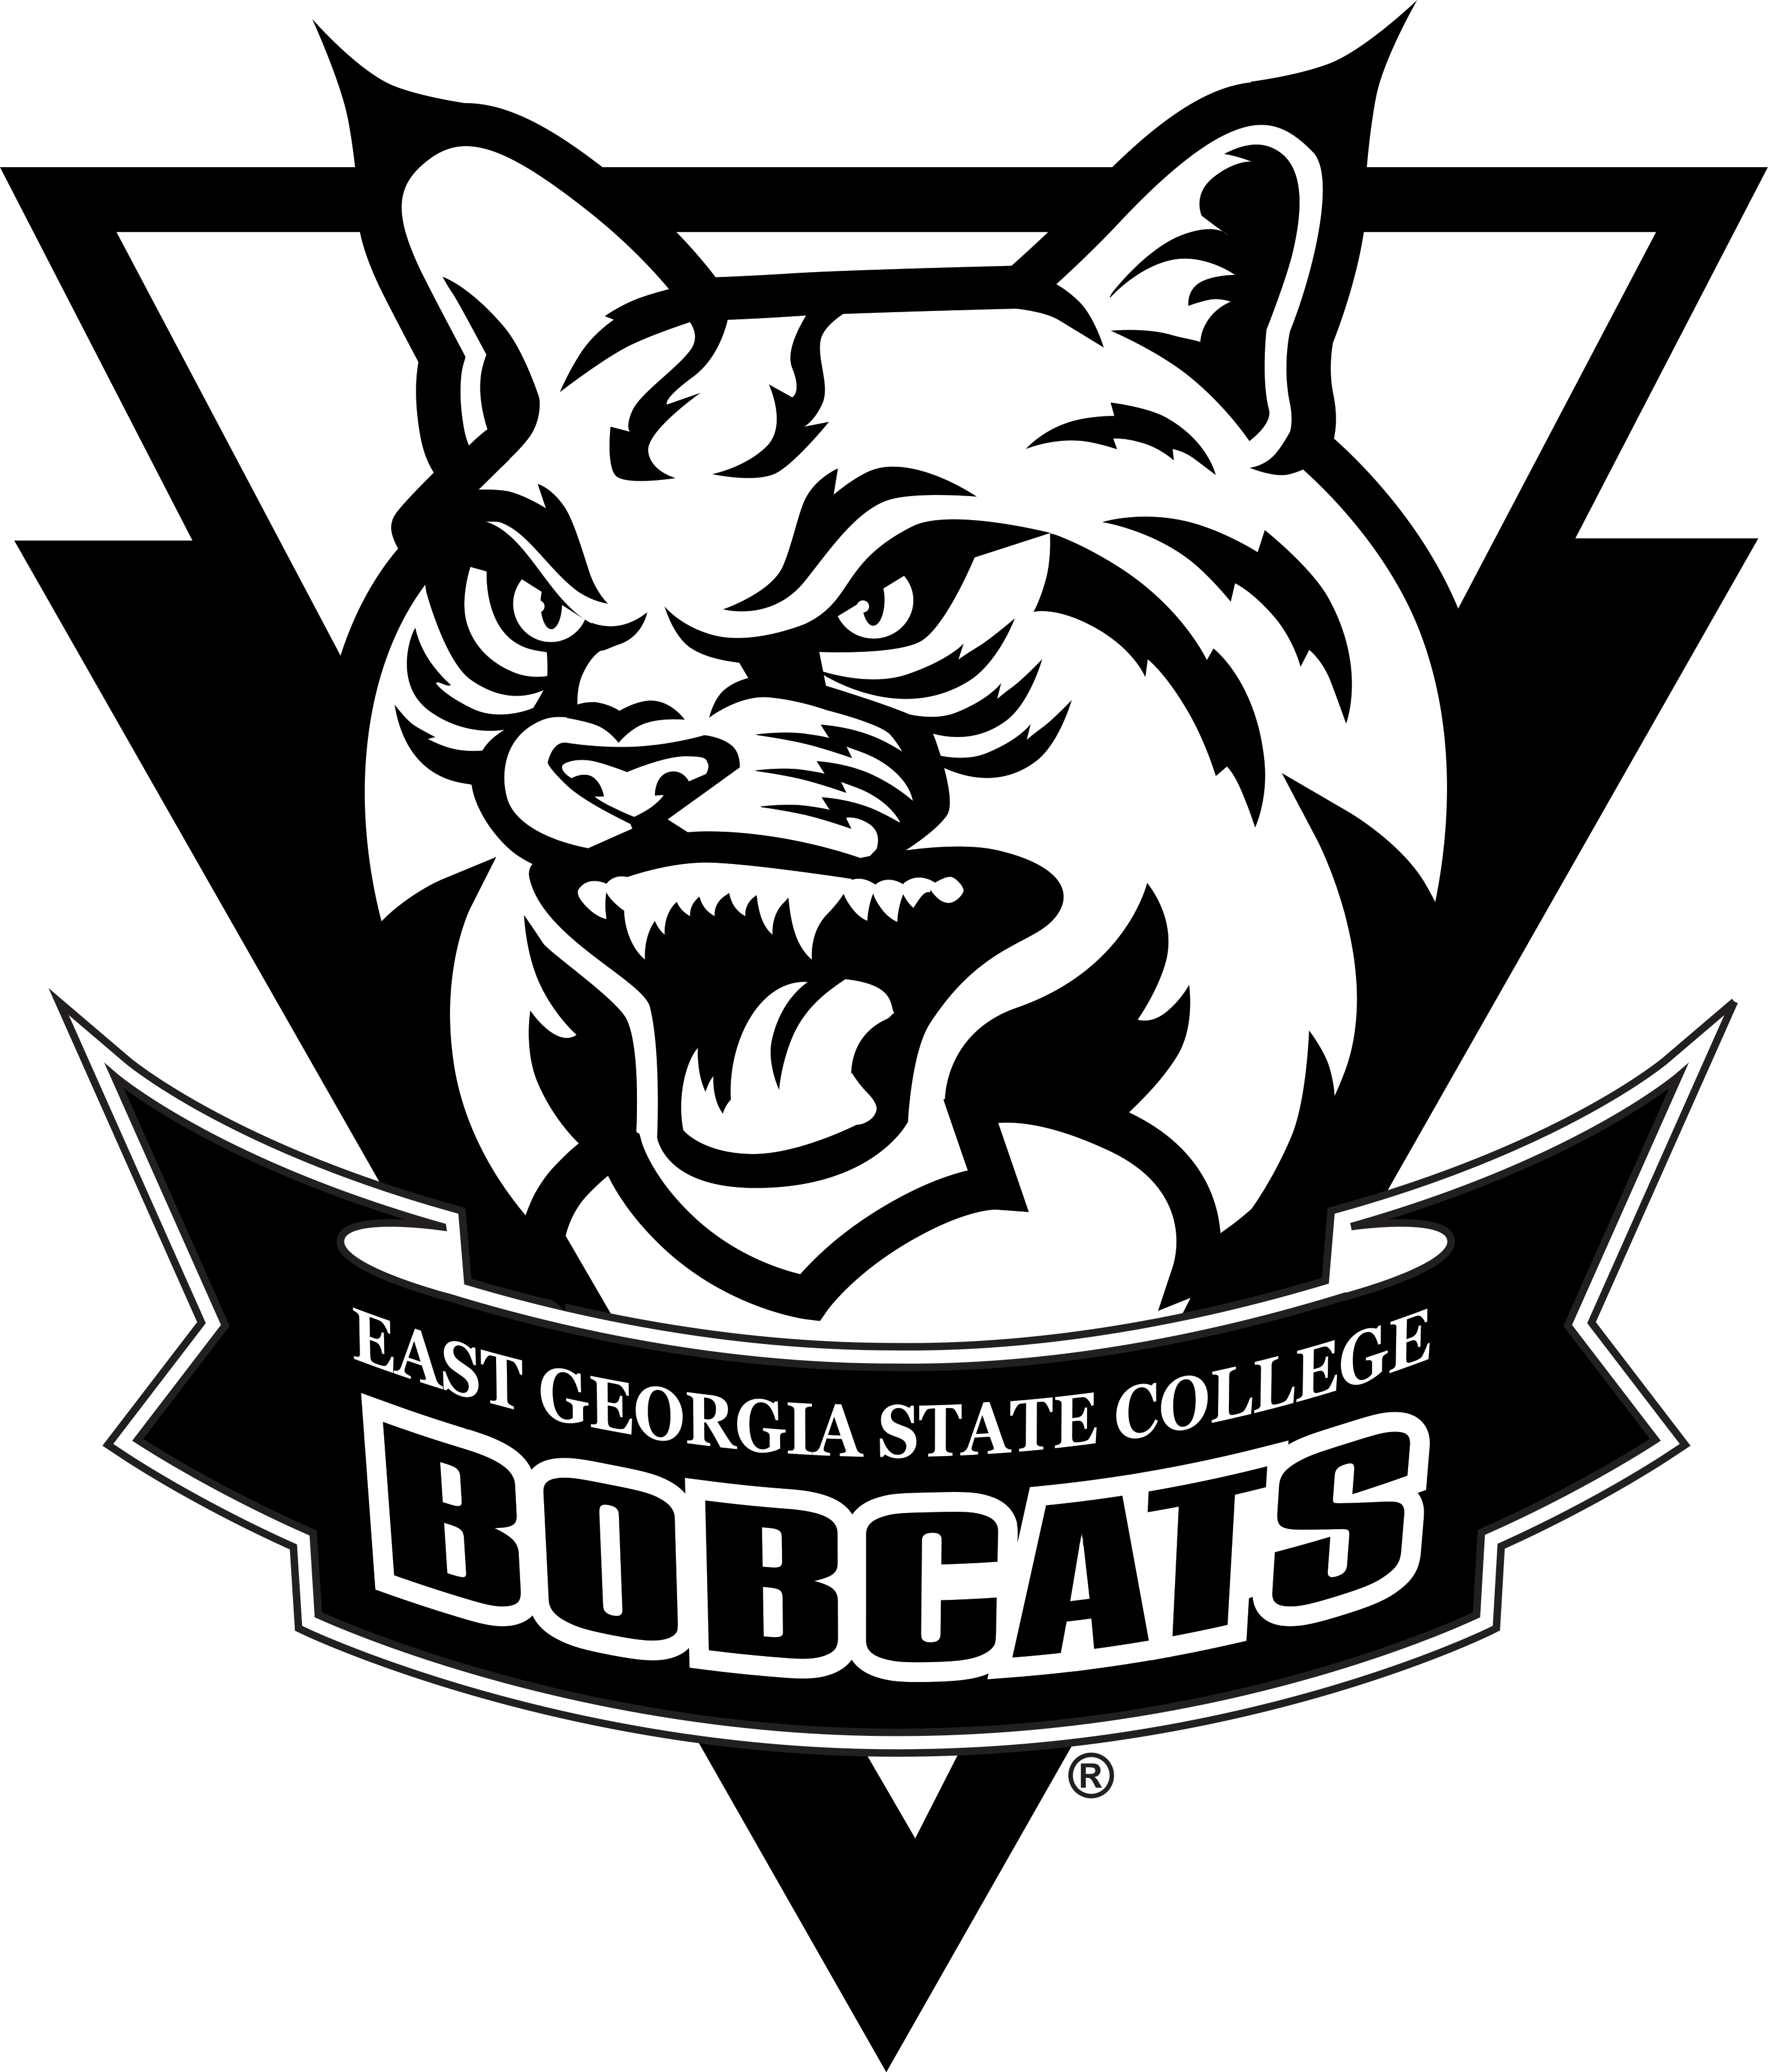 https://tnxlacademy.com/wp-content/uploads/2019/11/3962076-egsc-brand-resources-east-georgia-state-college-bobcat-png-black-and-white-2954_3458_preview.png